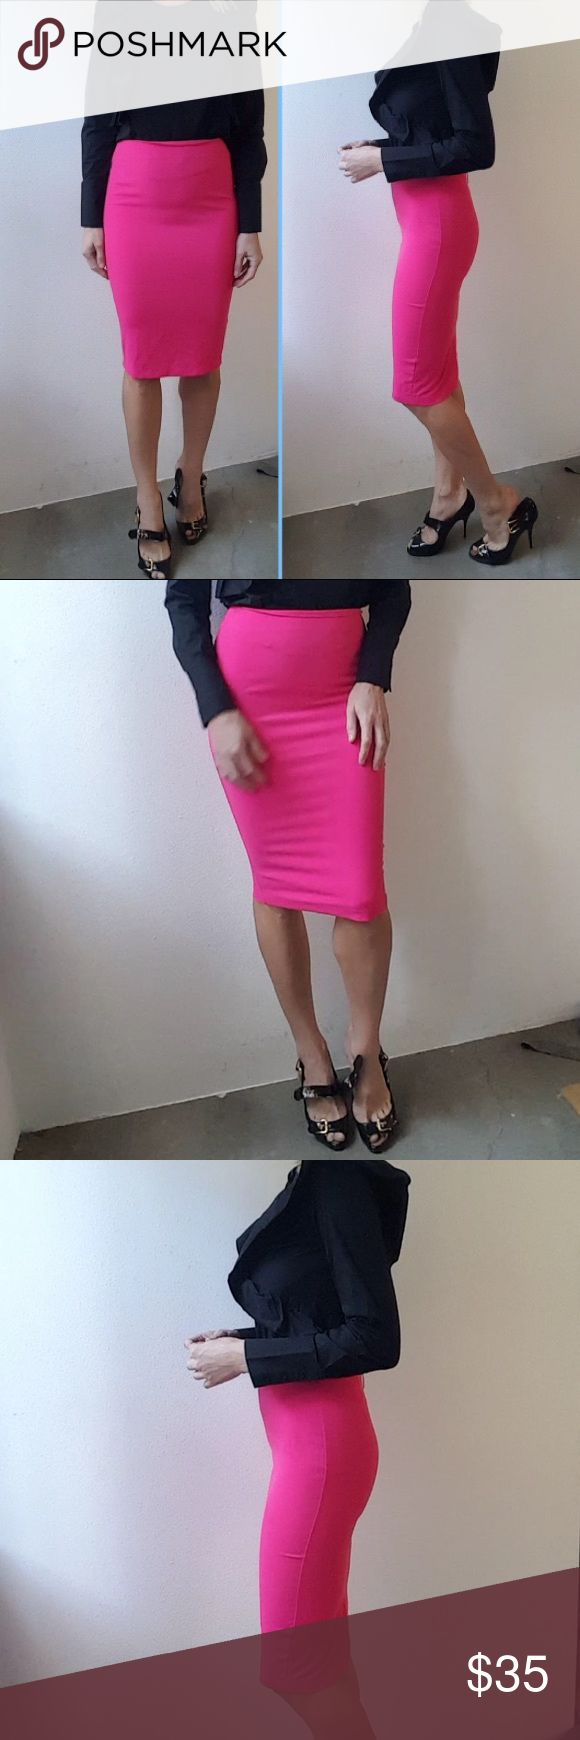 Spring sleek Hot pink Kardashian pencil skirt xs I wore this for one scene in a supporting role as a reporter in a film and it had a jacket that went with it but production could only give me the skirt so I haven't worn it since.  If you work in fashion or print your love this piece because super flattering and perfect for making a subtle statement well showing off a great body in a demure way. Mint condition it was just worn for one scene and has been dry cleaned xs .i'm waste 26 and 35…